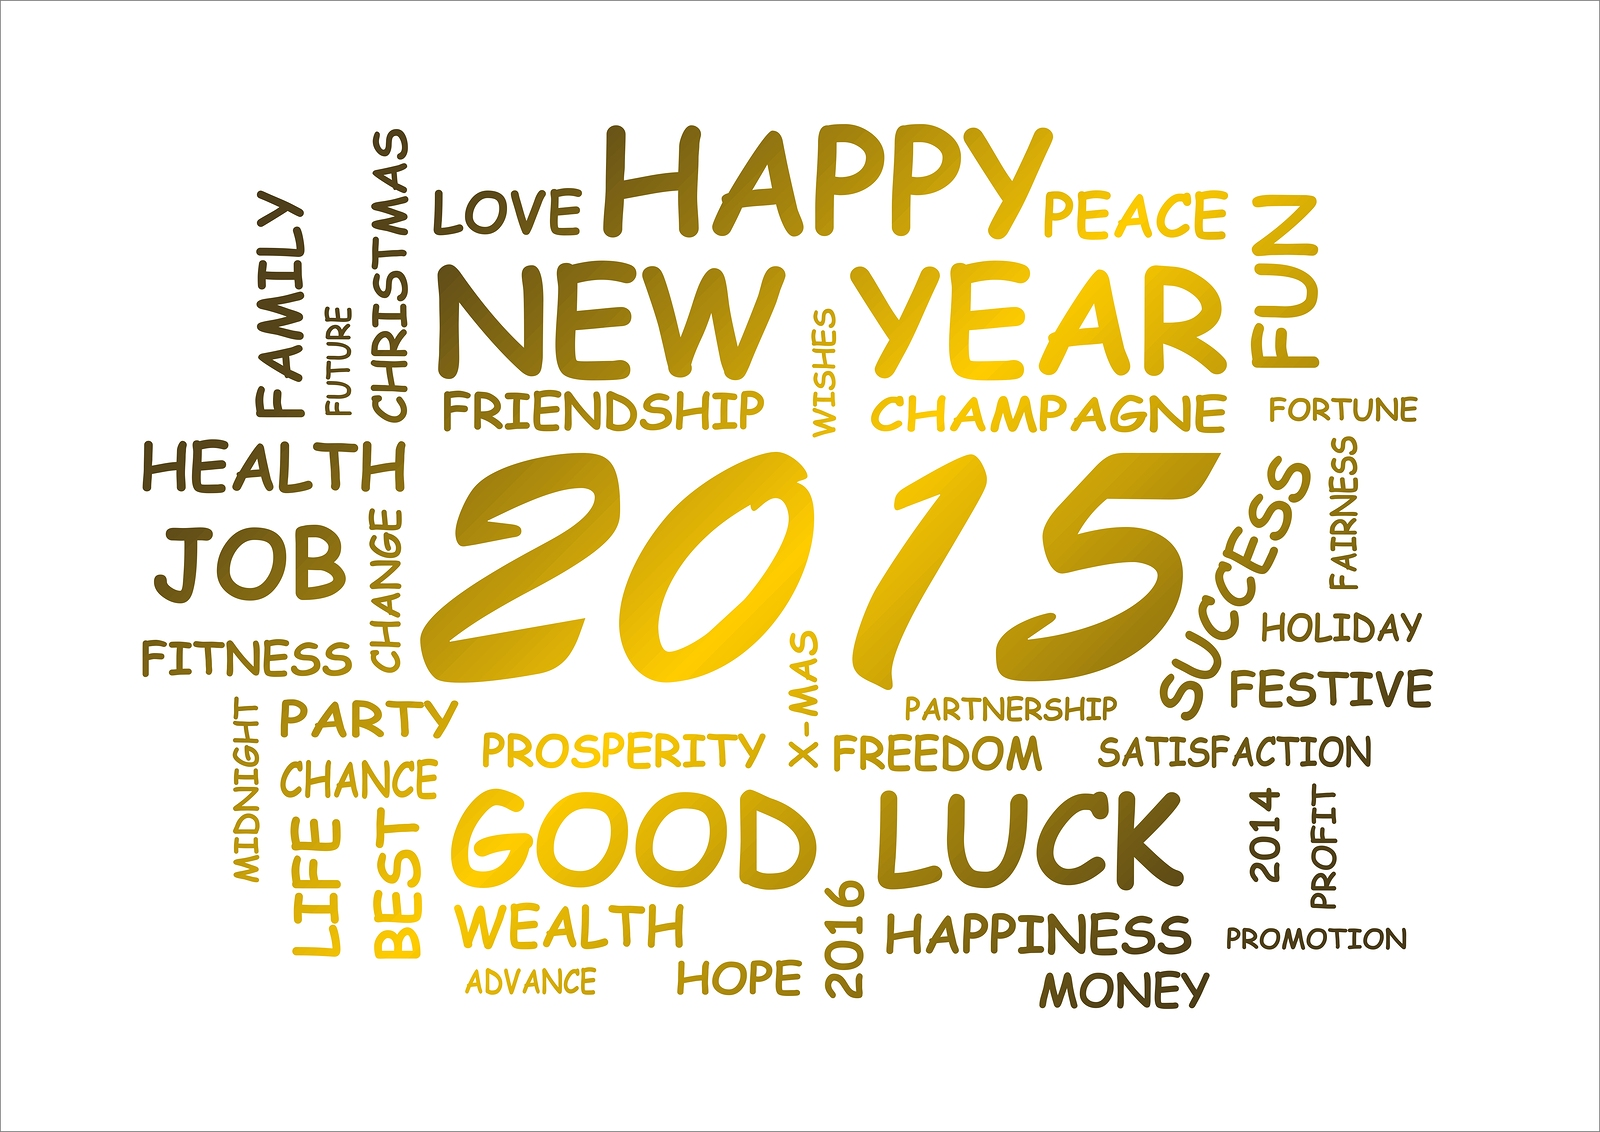 Happy New Year Wishes 2015